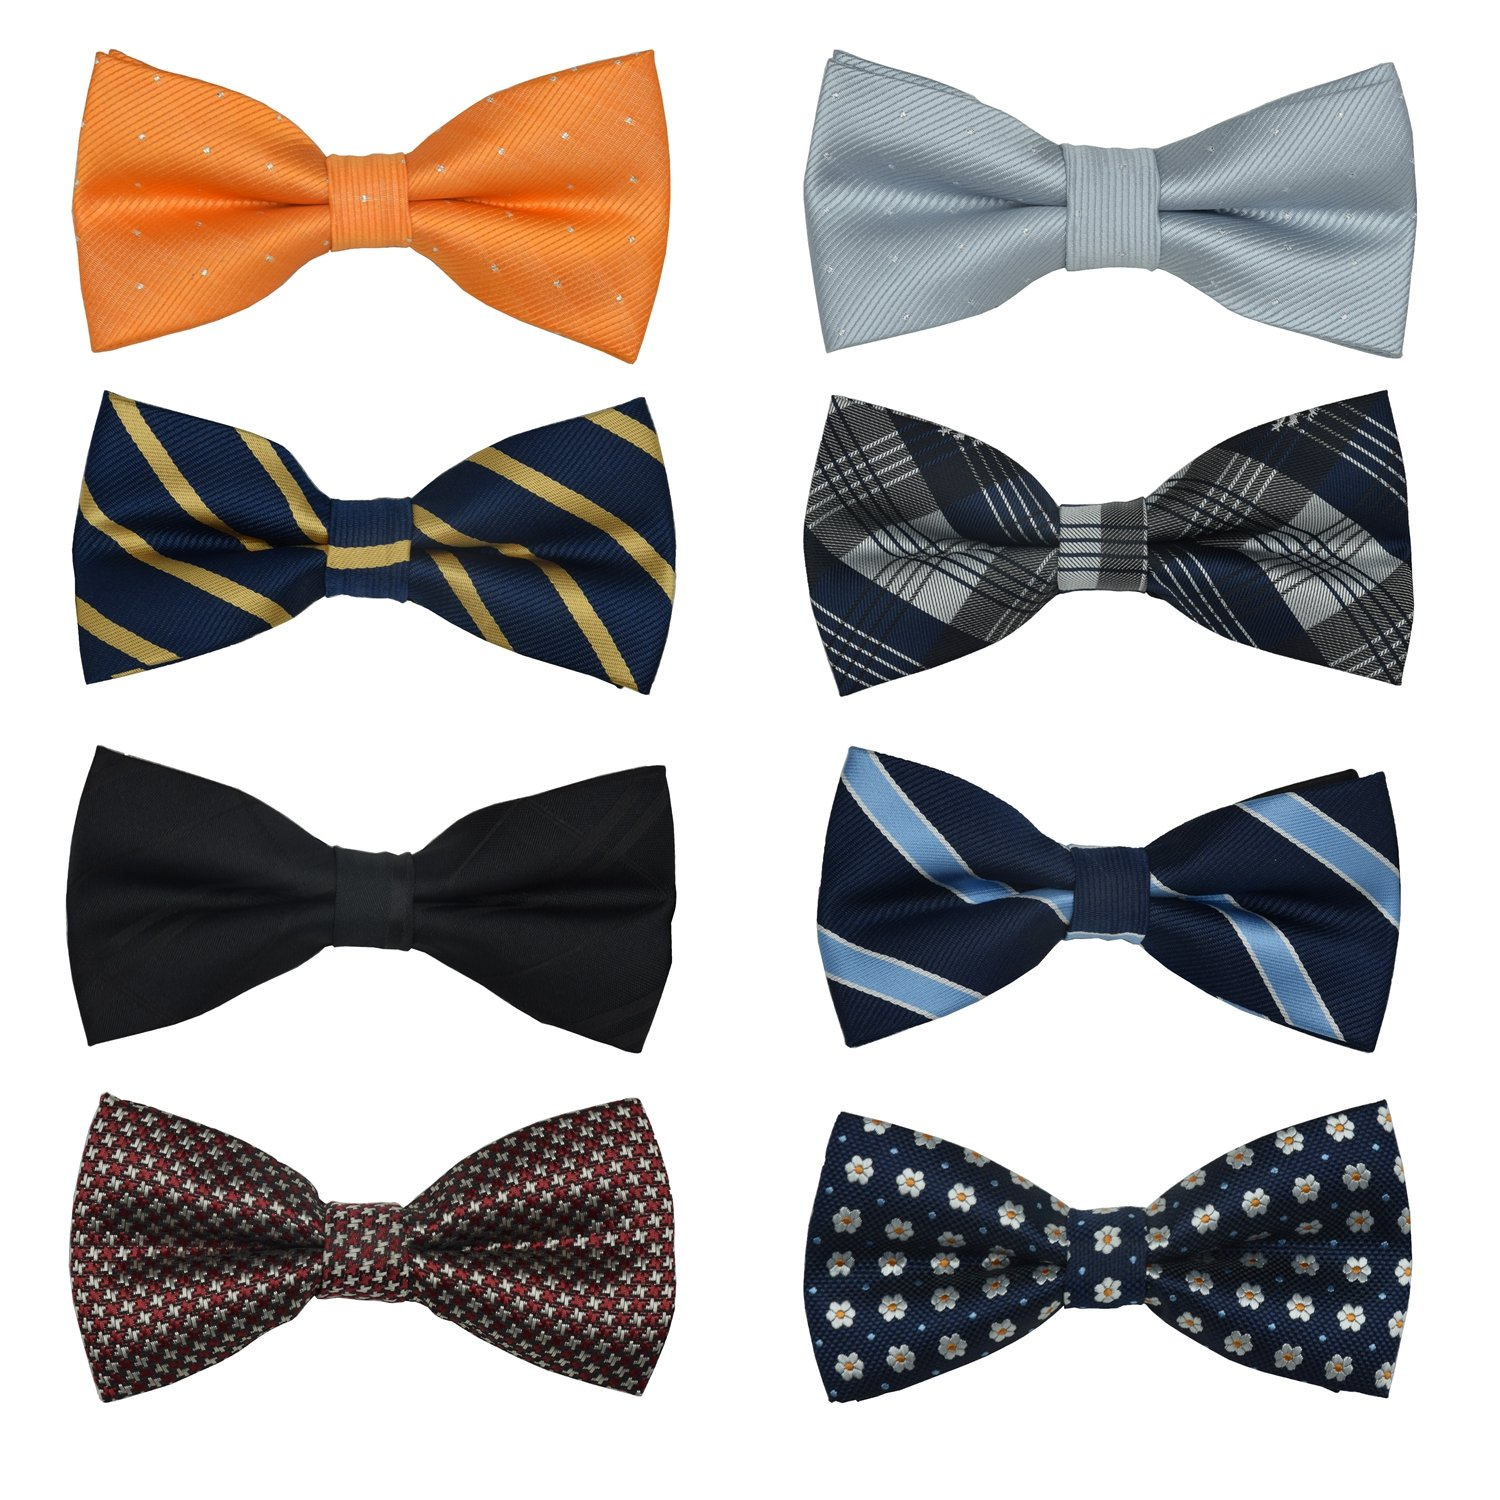 Men's Bow Ties Adjustable Pre-tied bowties for Boys Man 8 Packs in Gift Box